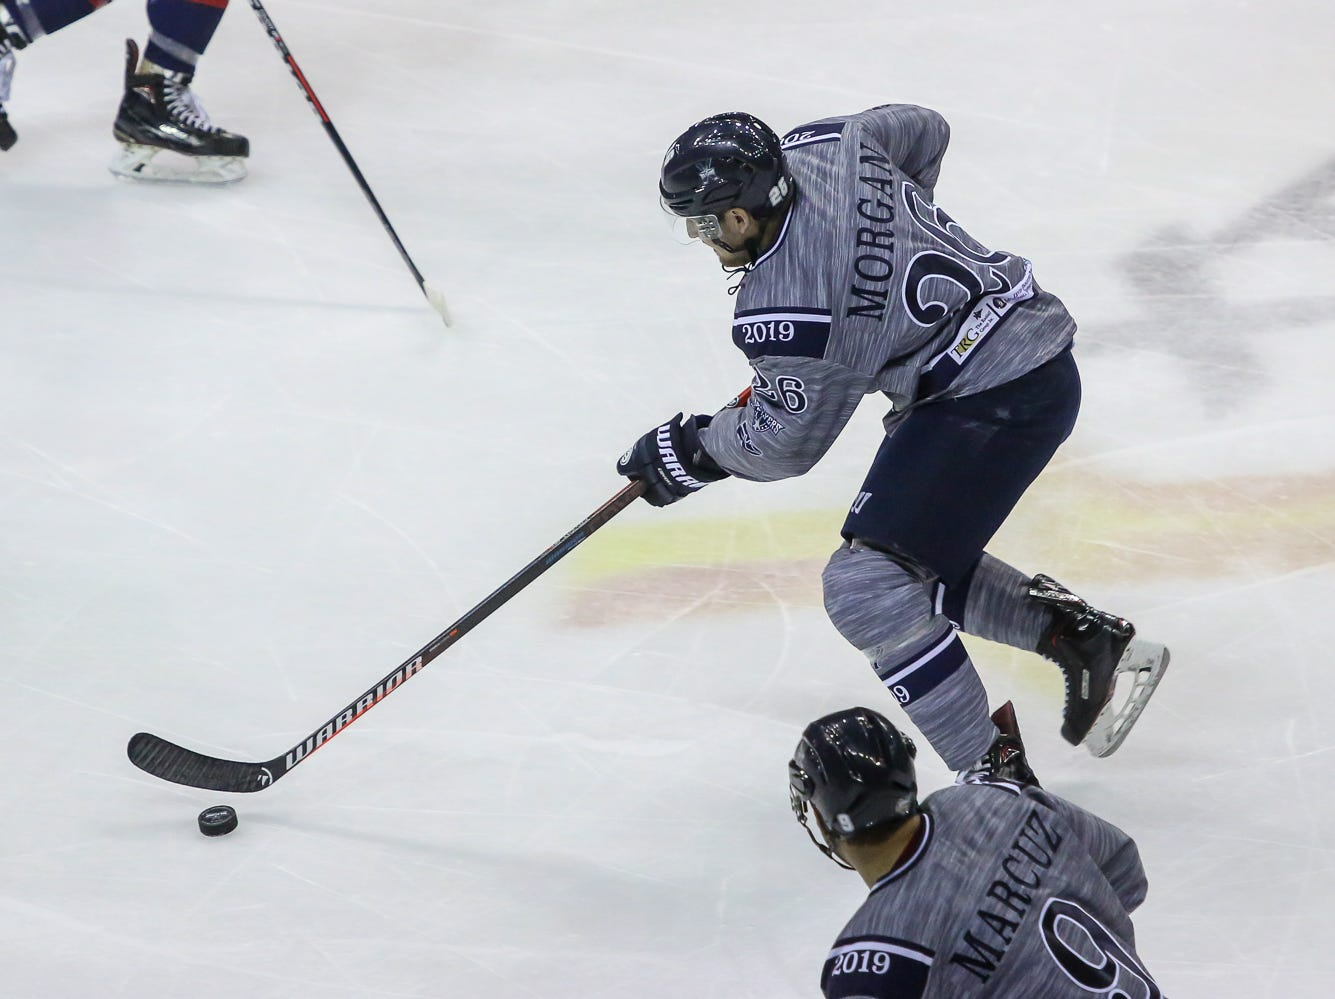 Pensacola's Brian Morgan (26) moves the puck up the ice against Macon during the last home game of the regular season at the Pensacola Bay Center on Saturday, March 23, 2019. With over 4,300 people in attendance for Pensacola's 3-1 victory, the Ice Flyers mark six straight years of over 100,000 people at their home games each season. The team has won their last five games in a row and will finish out their last five games on the road before entering the playoffs in a couple of weeks.